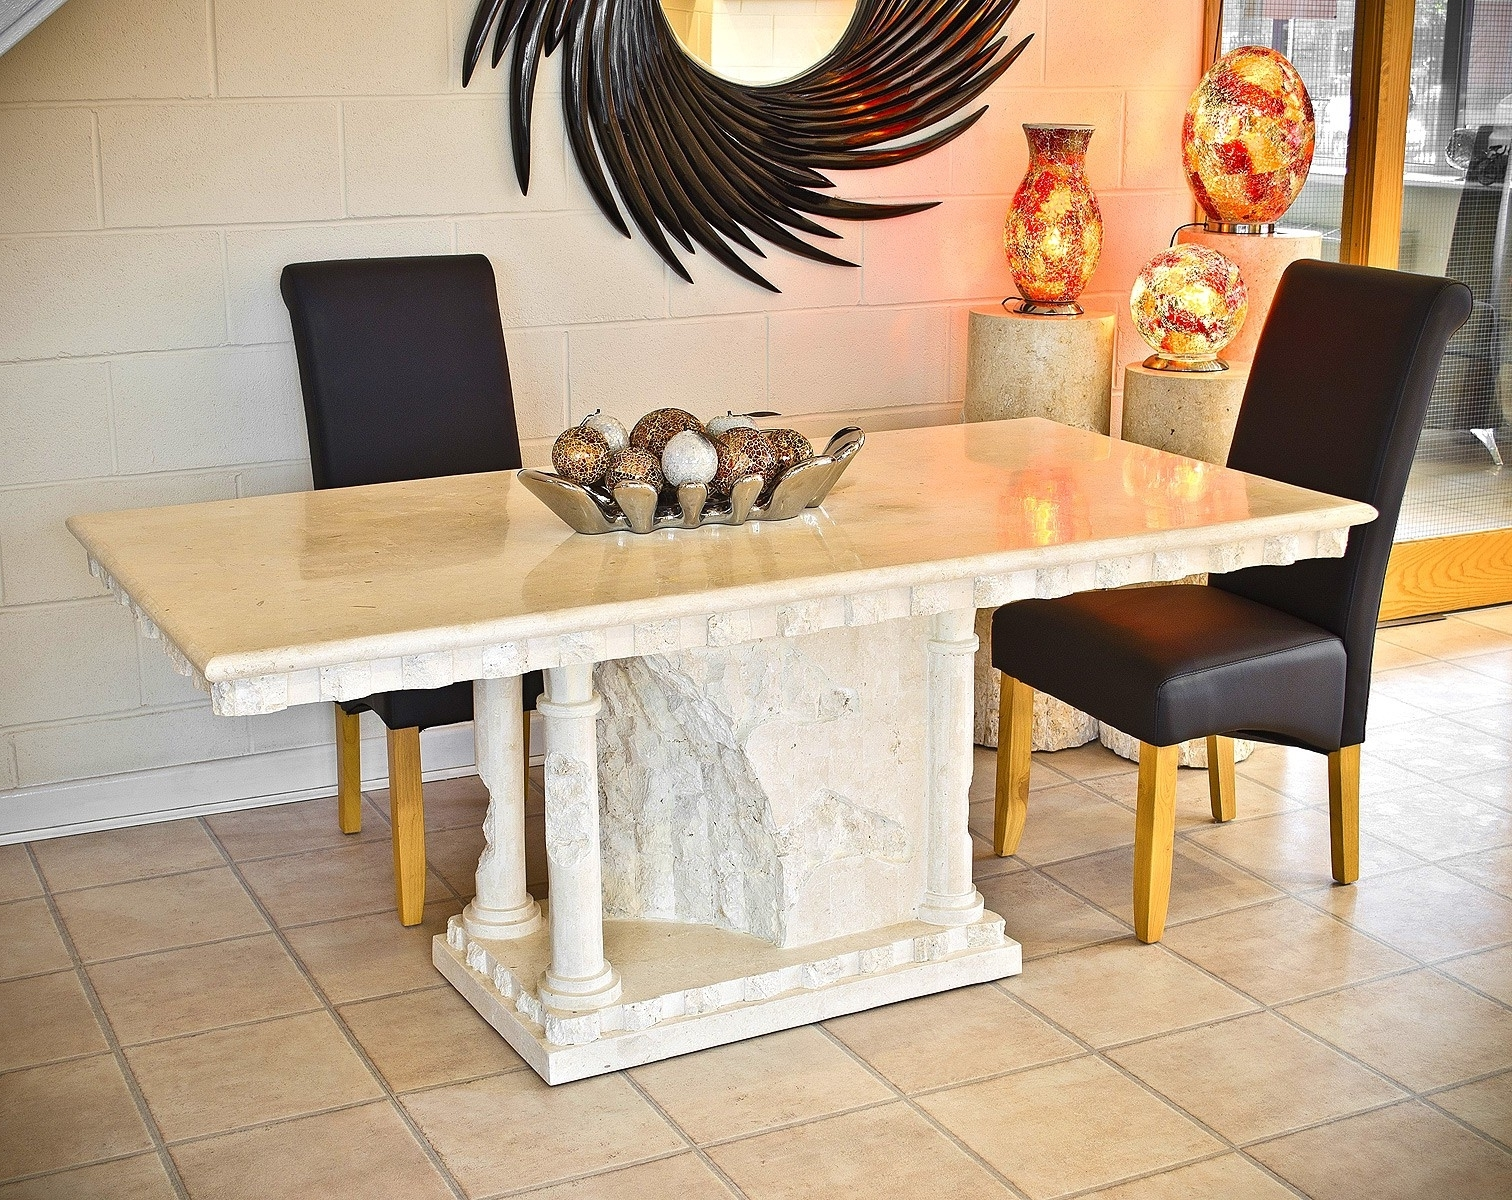 Most Popular Bellagio Mactan Dining Table – Mactan Stone Furniture – Be Fabulous! For Bellagio Dining Tables (View 8 of 25)